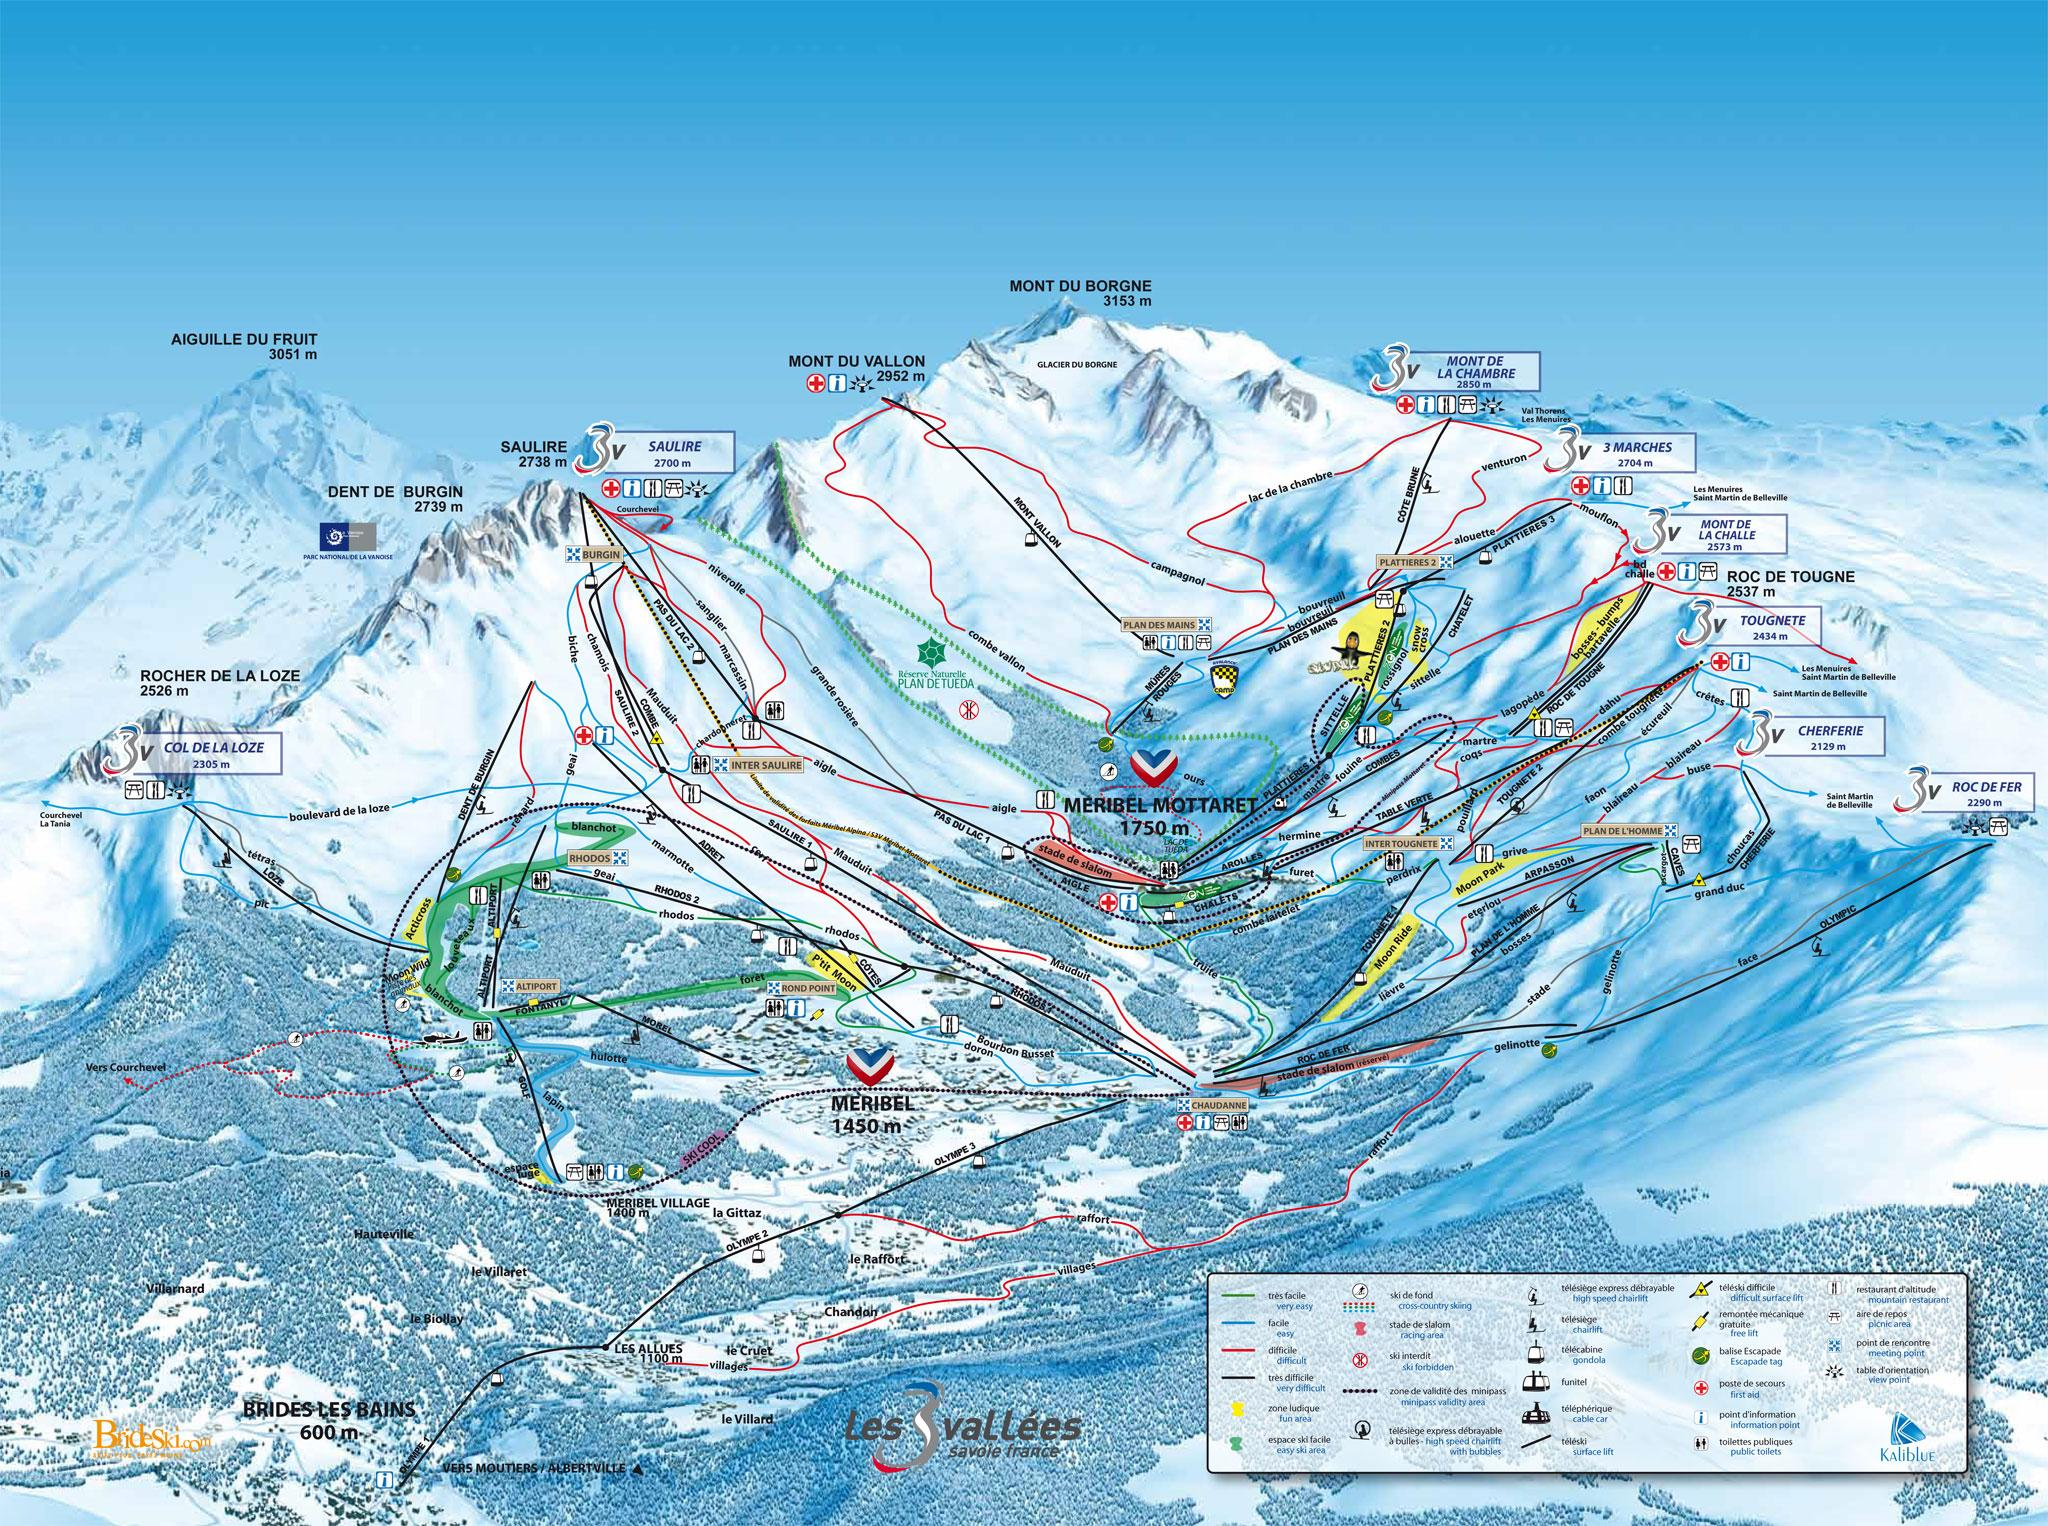 Meribel Ski Map Méribel Mottaret Piste Map | J2Ski Meribel Ski Map